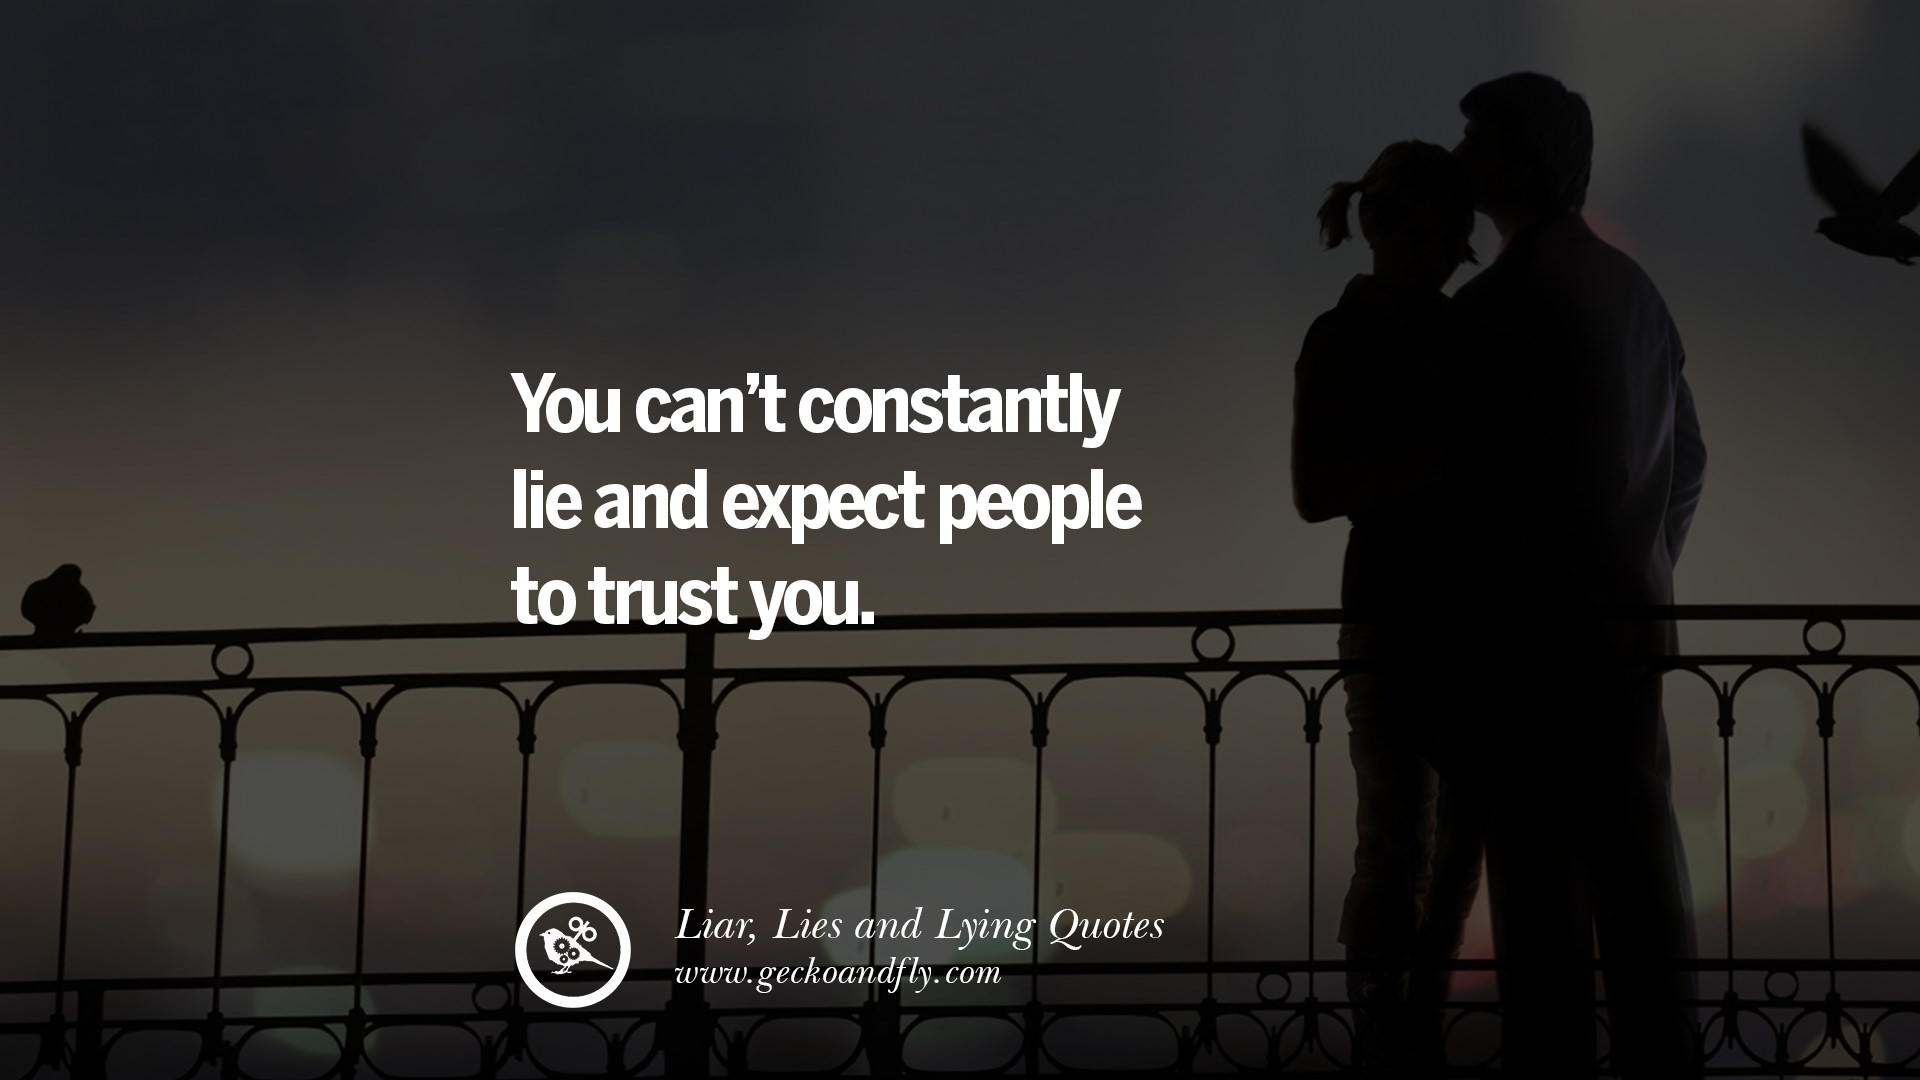 60 Quotes About Liar, Lies and Lying Boyfriend In A Relationship